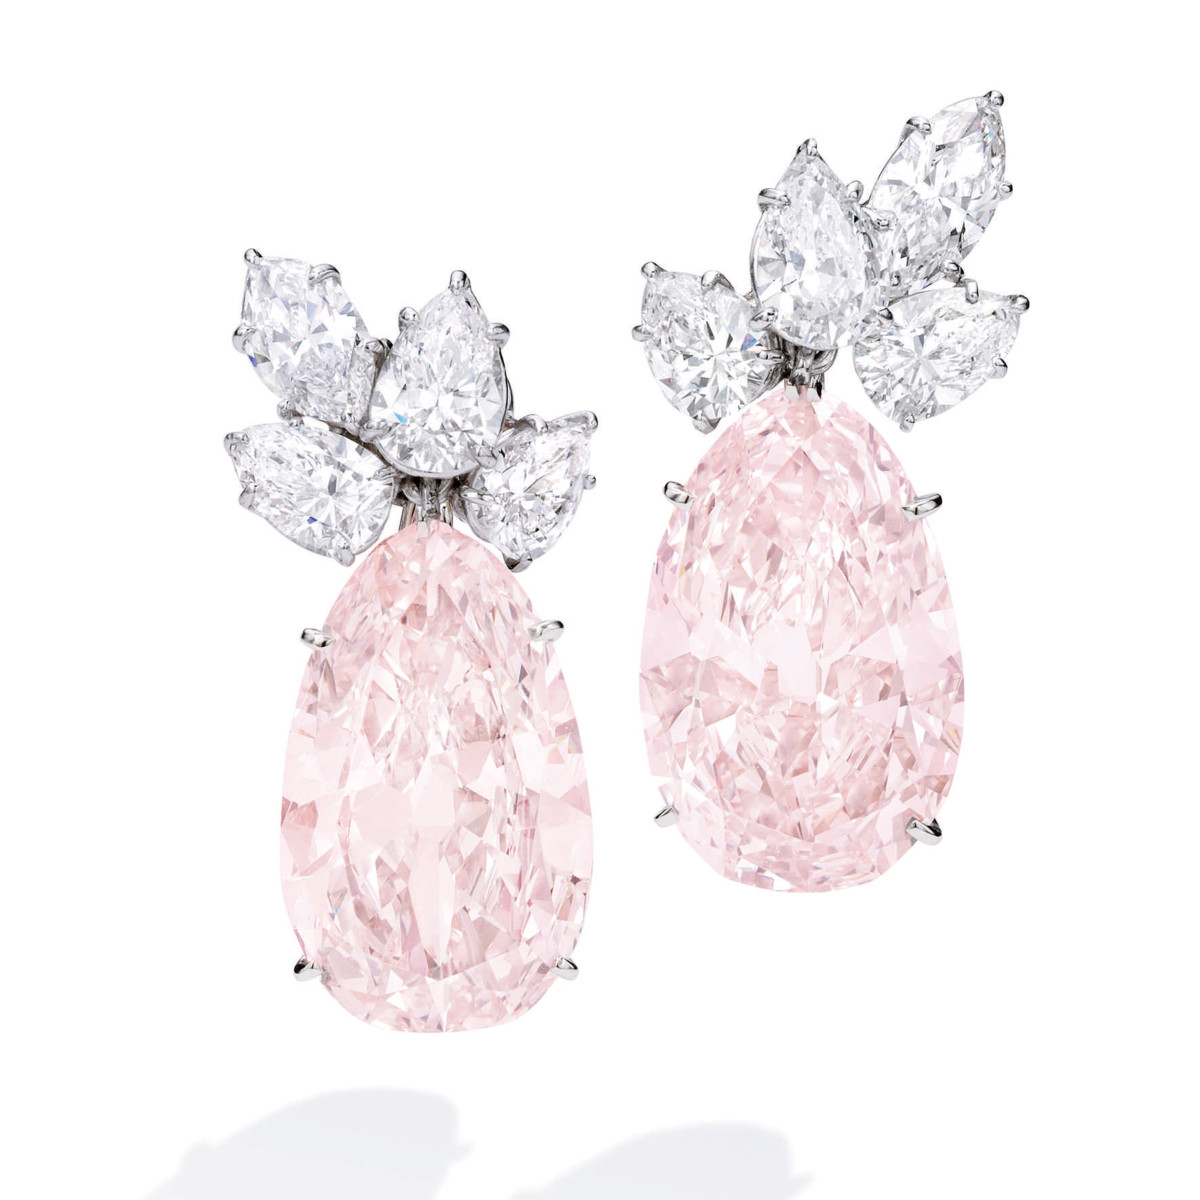 Nenetta Carter's Light Brown Pink and Diamond Earclips, Harry Winston